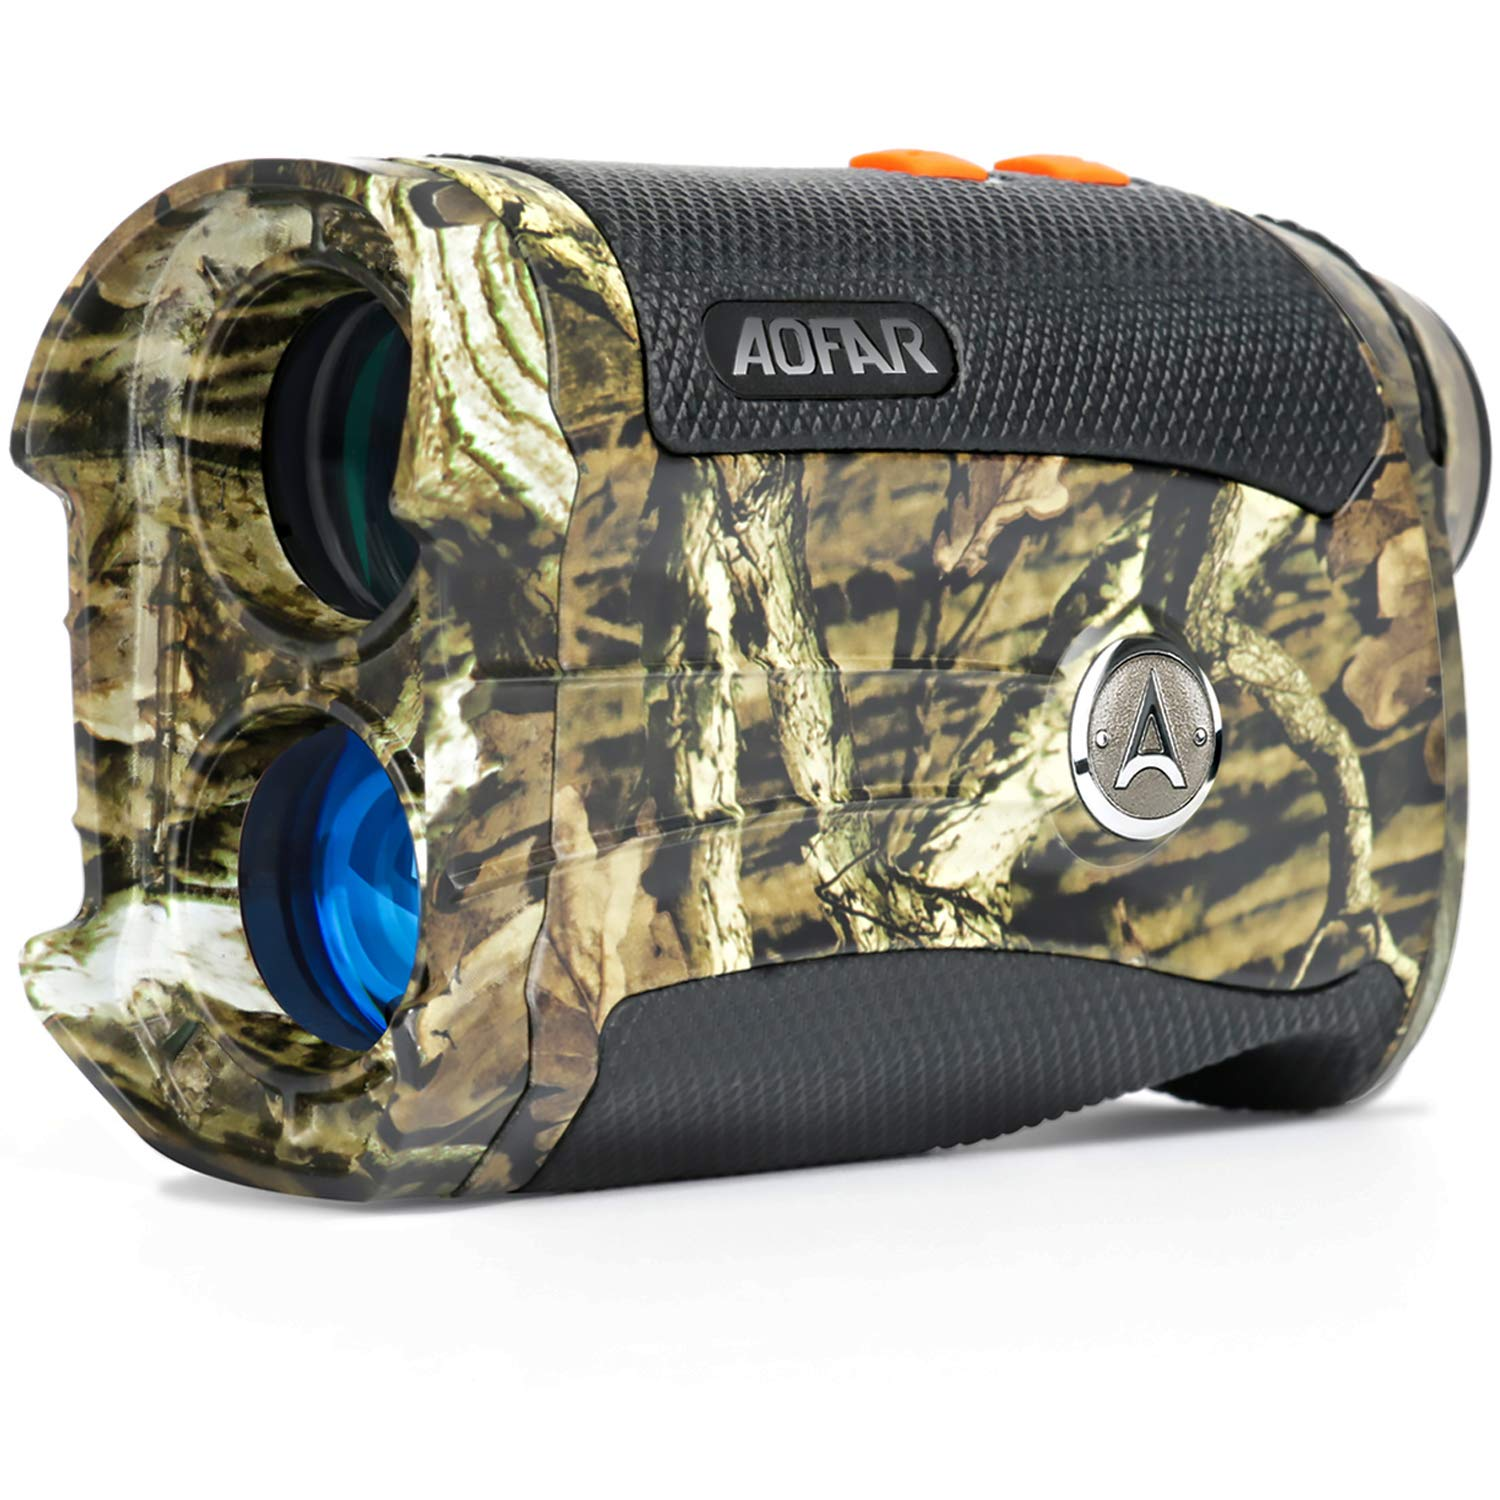 AOFAR Range Finder for Hunting Archery H2 600 Yards Shooting Wild Waterproof Coma Rangefinder with Angle and Horizontal Distance, 6X 25mm, Range and Bow Mode, Free Battery Gift Package by AOFAR